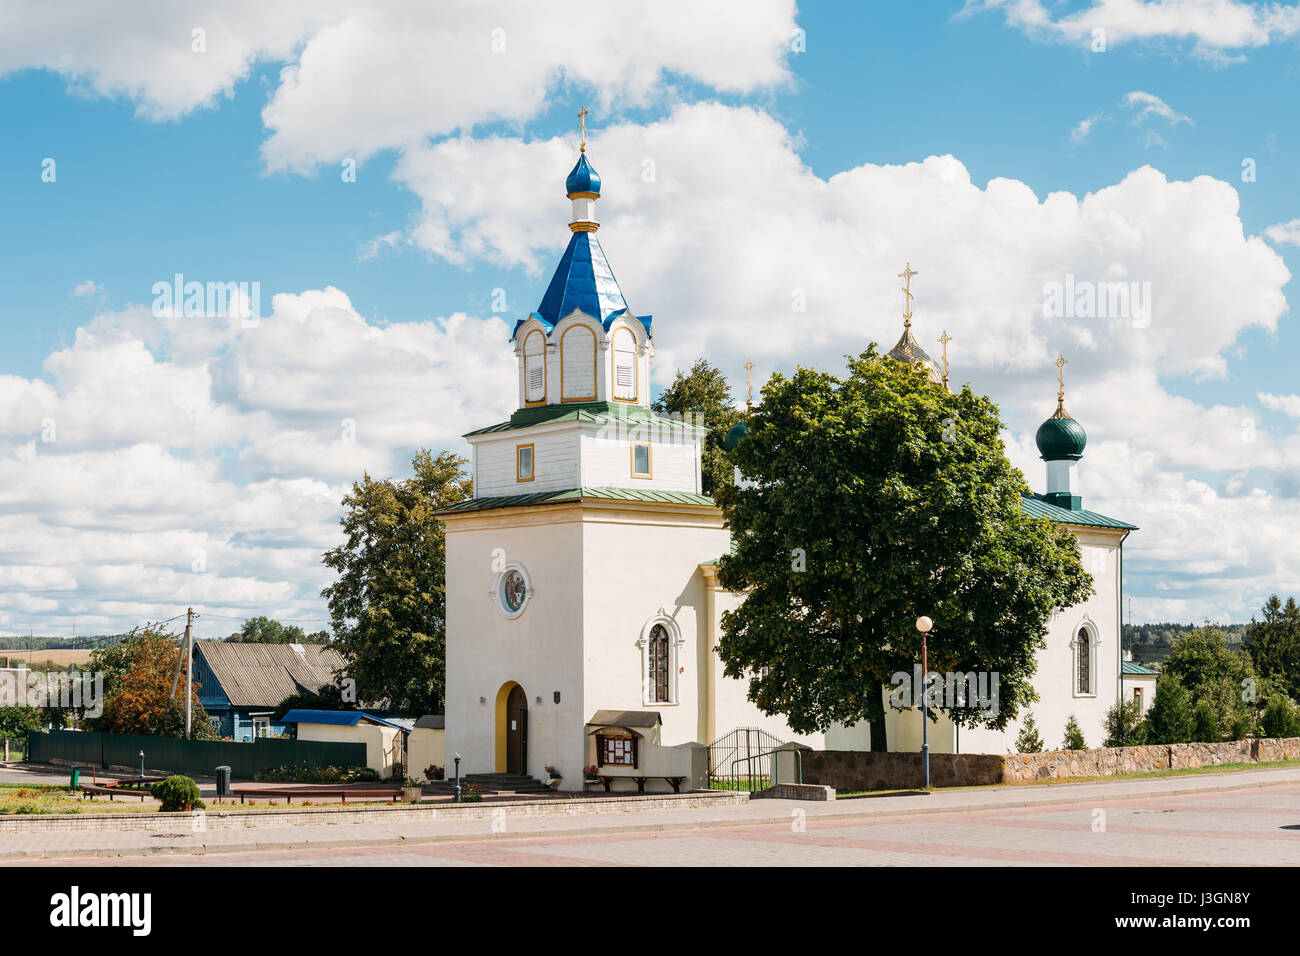 Mir, Belarus. Old Orthodox Church Of The Holy Trinity In Mir, Belarus. Famous Landmark. - Stock Image